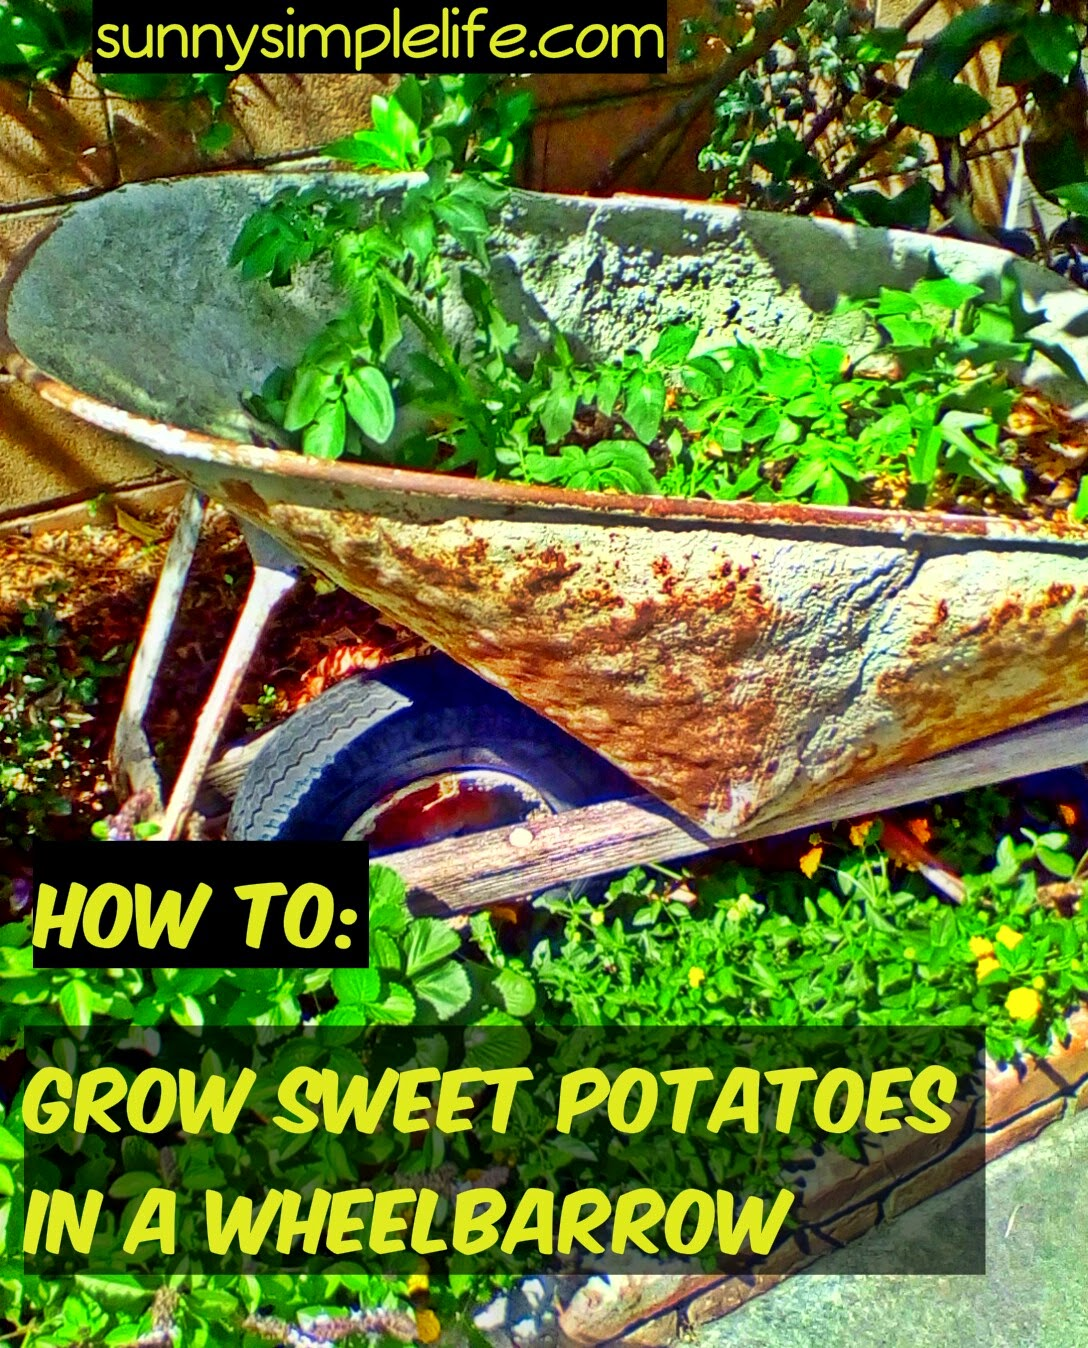 Sunny Simple Life: How To Grow Sweet Potatoes In A Wheelbarrow